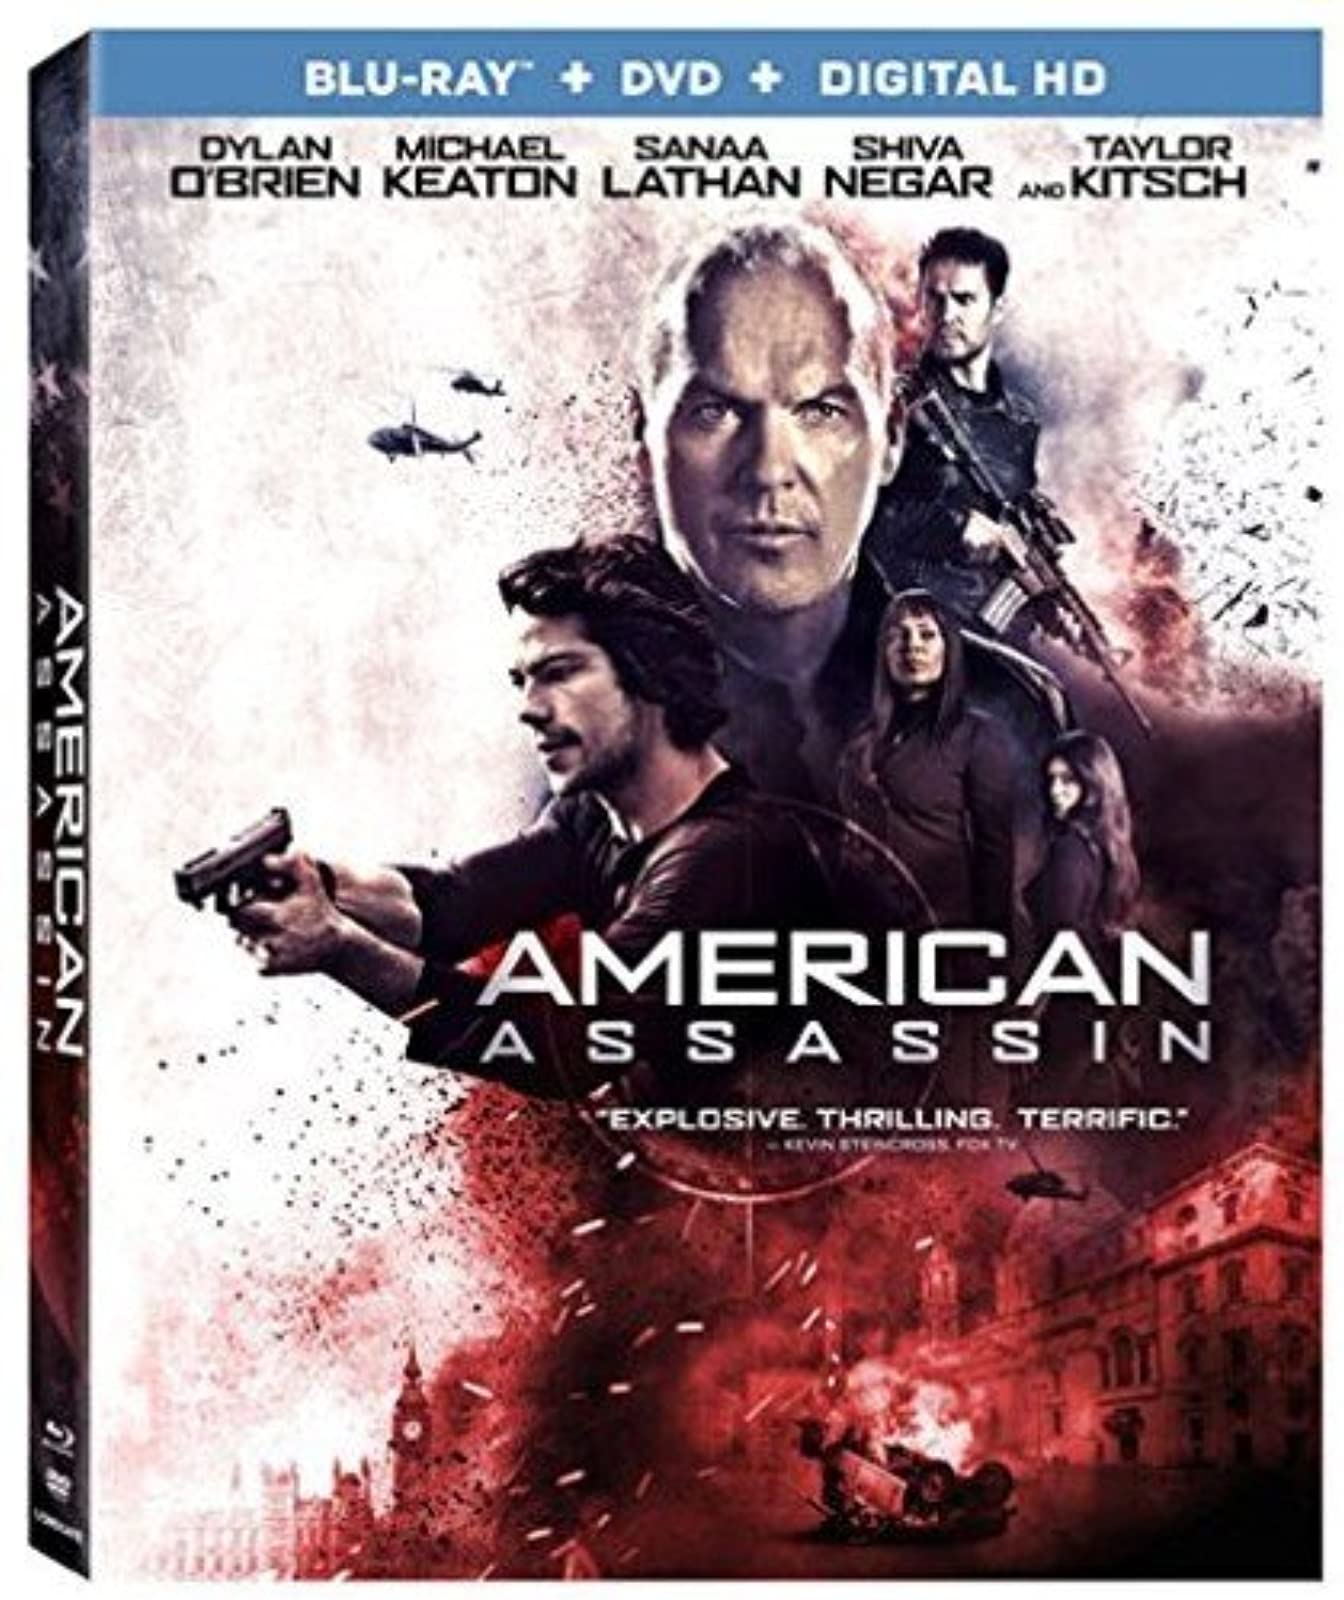 American Assassin Blu-Ray On Blu-Ray With Dylan O'brien